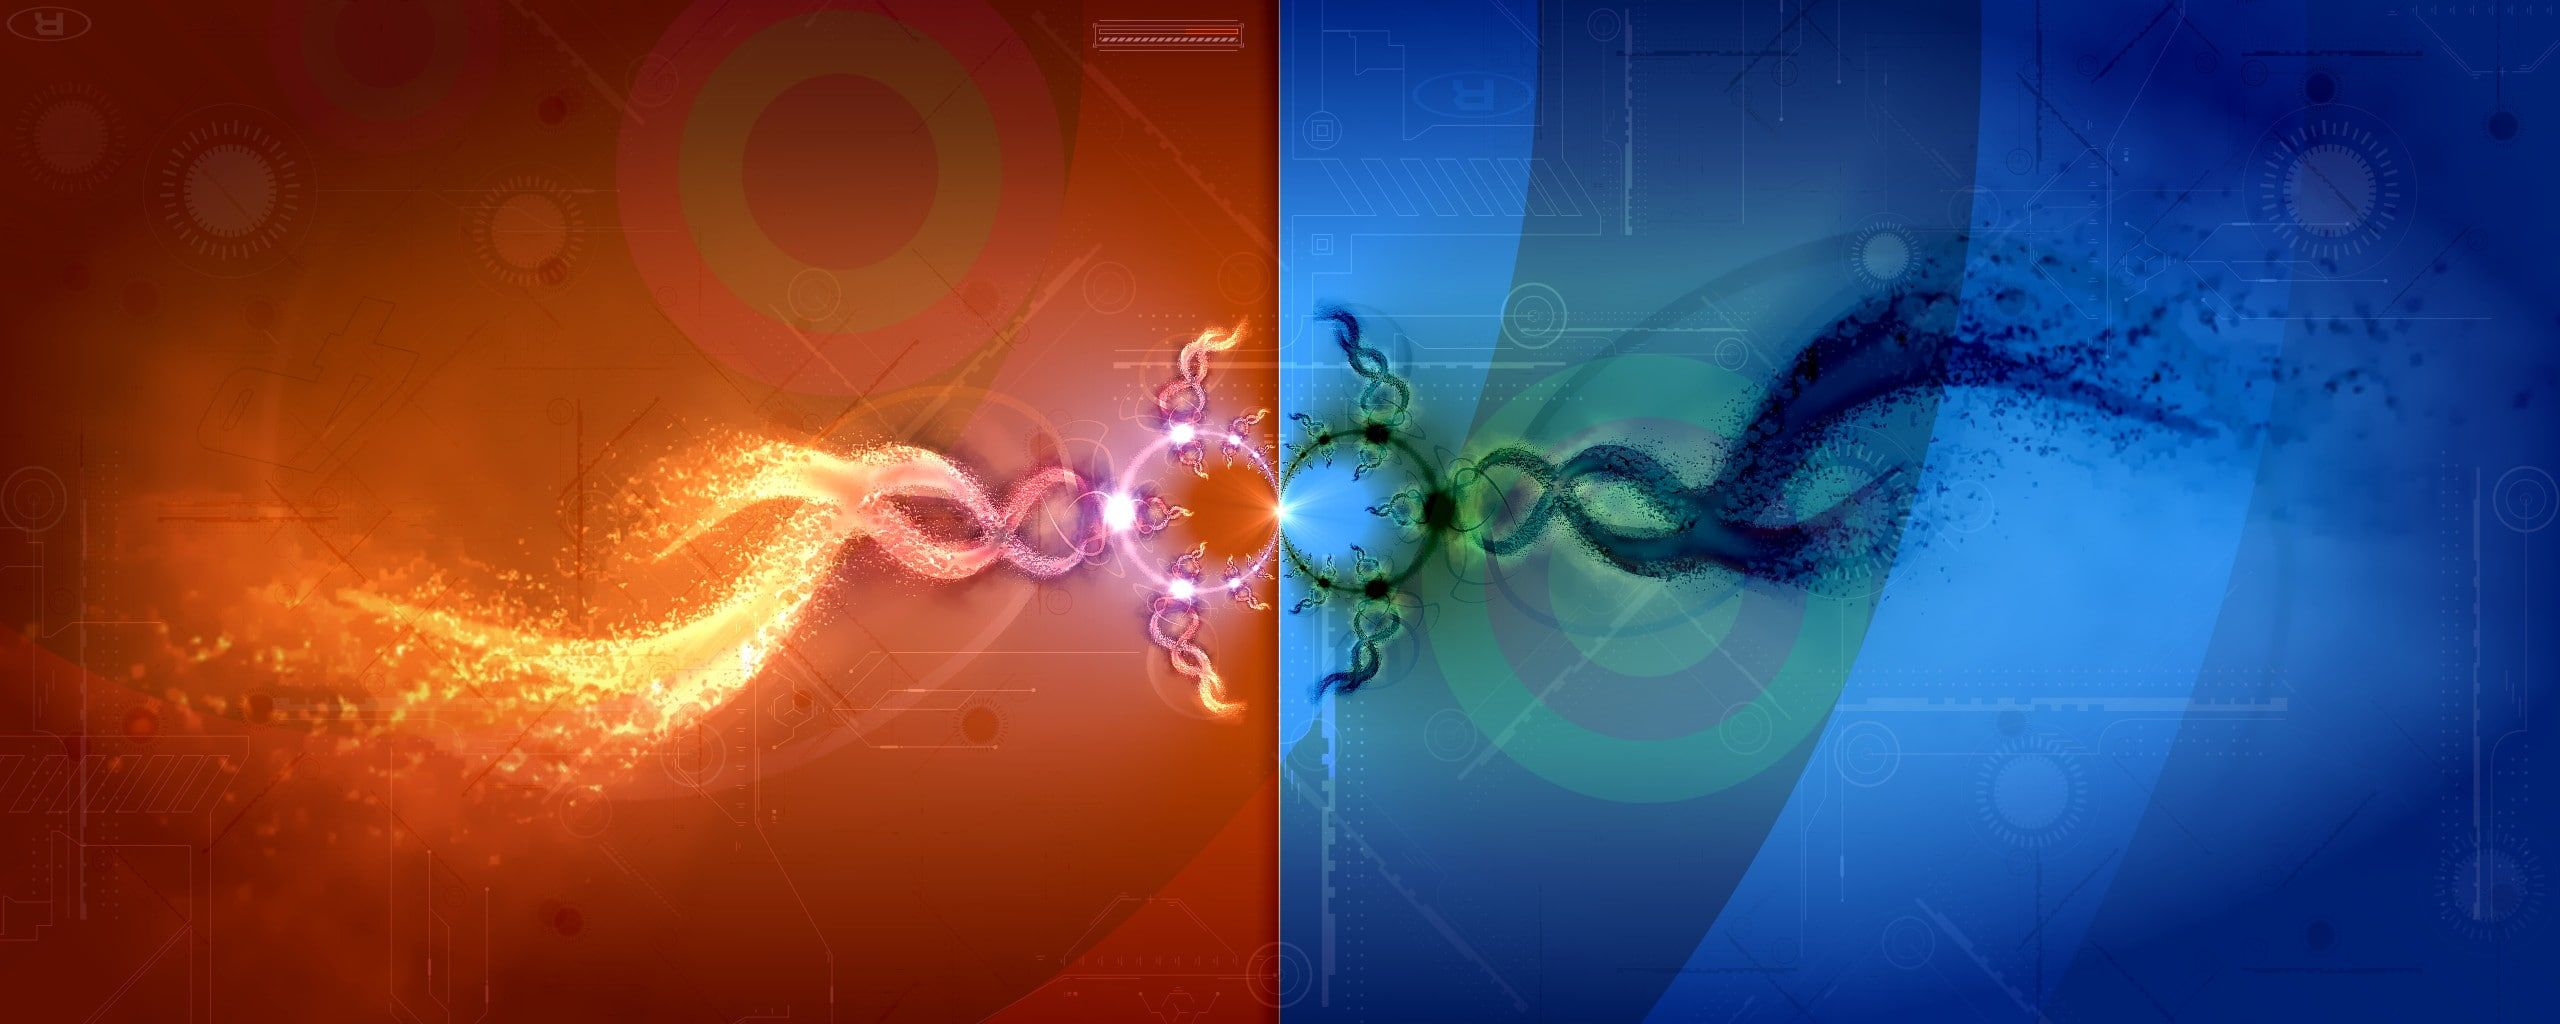 Dual Monitor Widescreen Yellow Pink Green And Blue Painting Widescreen Dual Monitor 2k Wa Dual Screen Wallpaper Dual Monitor Wallpaper Artistic Wallpaper